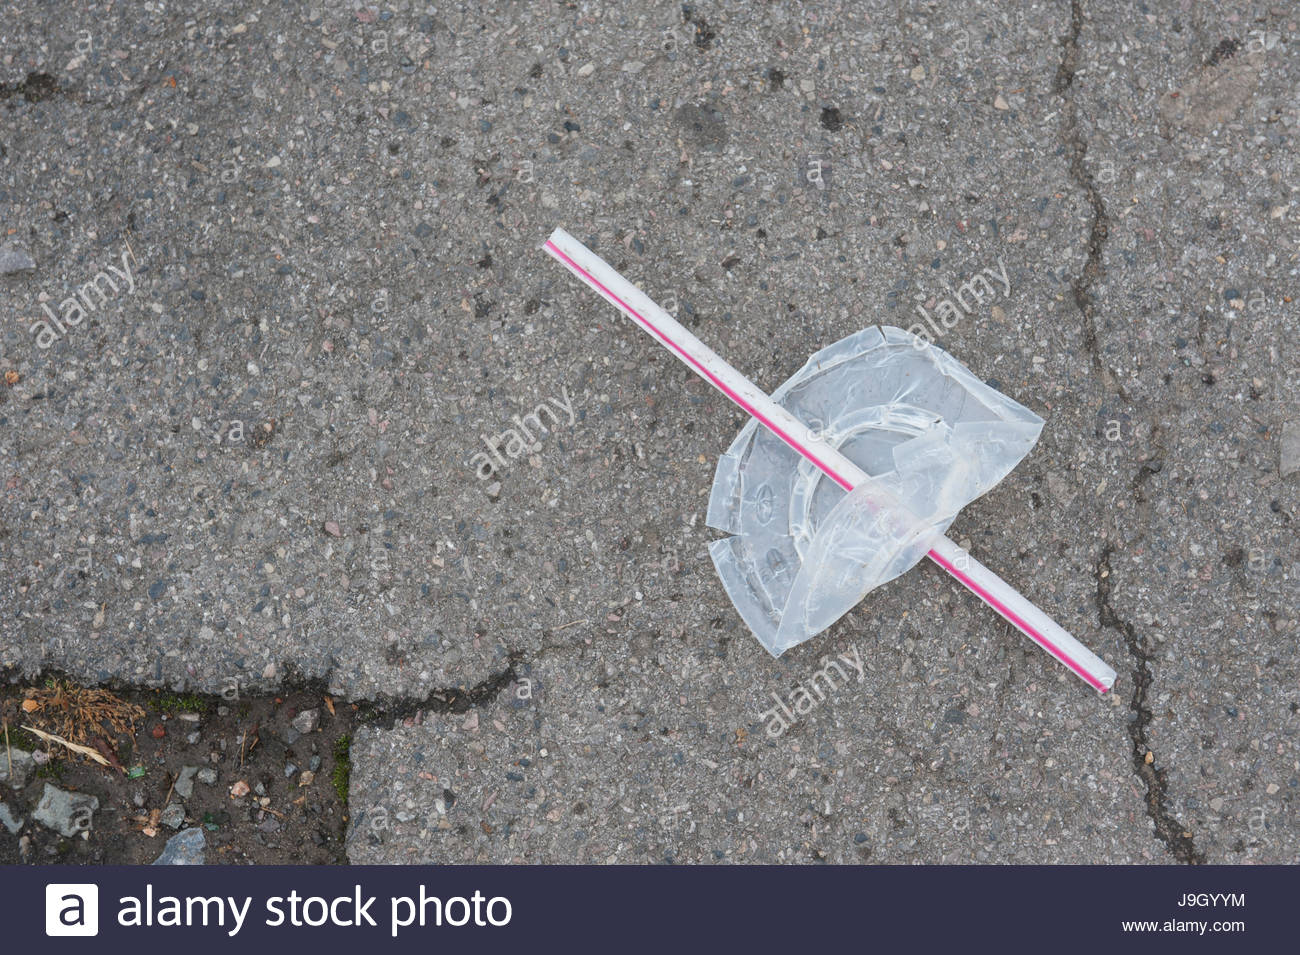 macdonalds-drinks-lid-and-straw-thrown-away-on-a-uk-street-the-nearest-J9GYYM.jpg